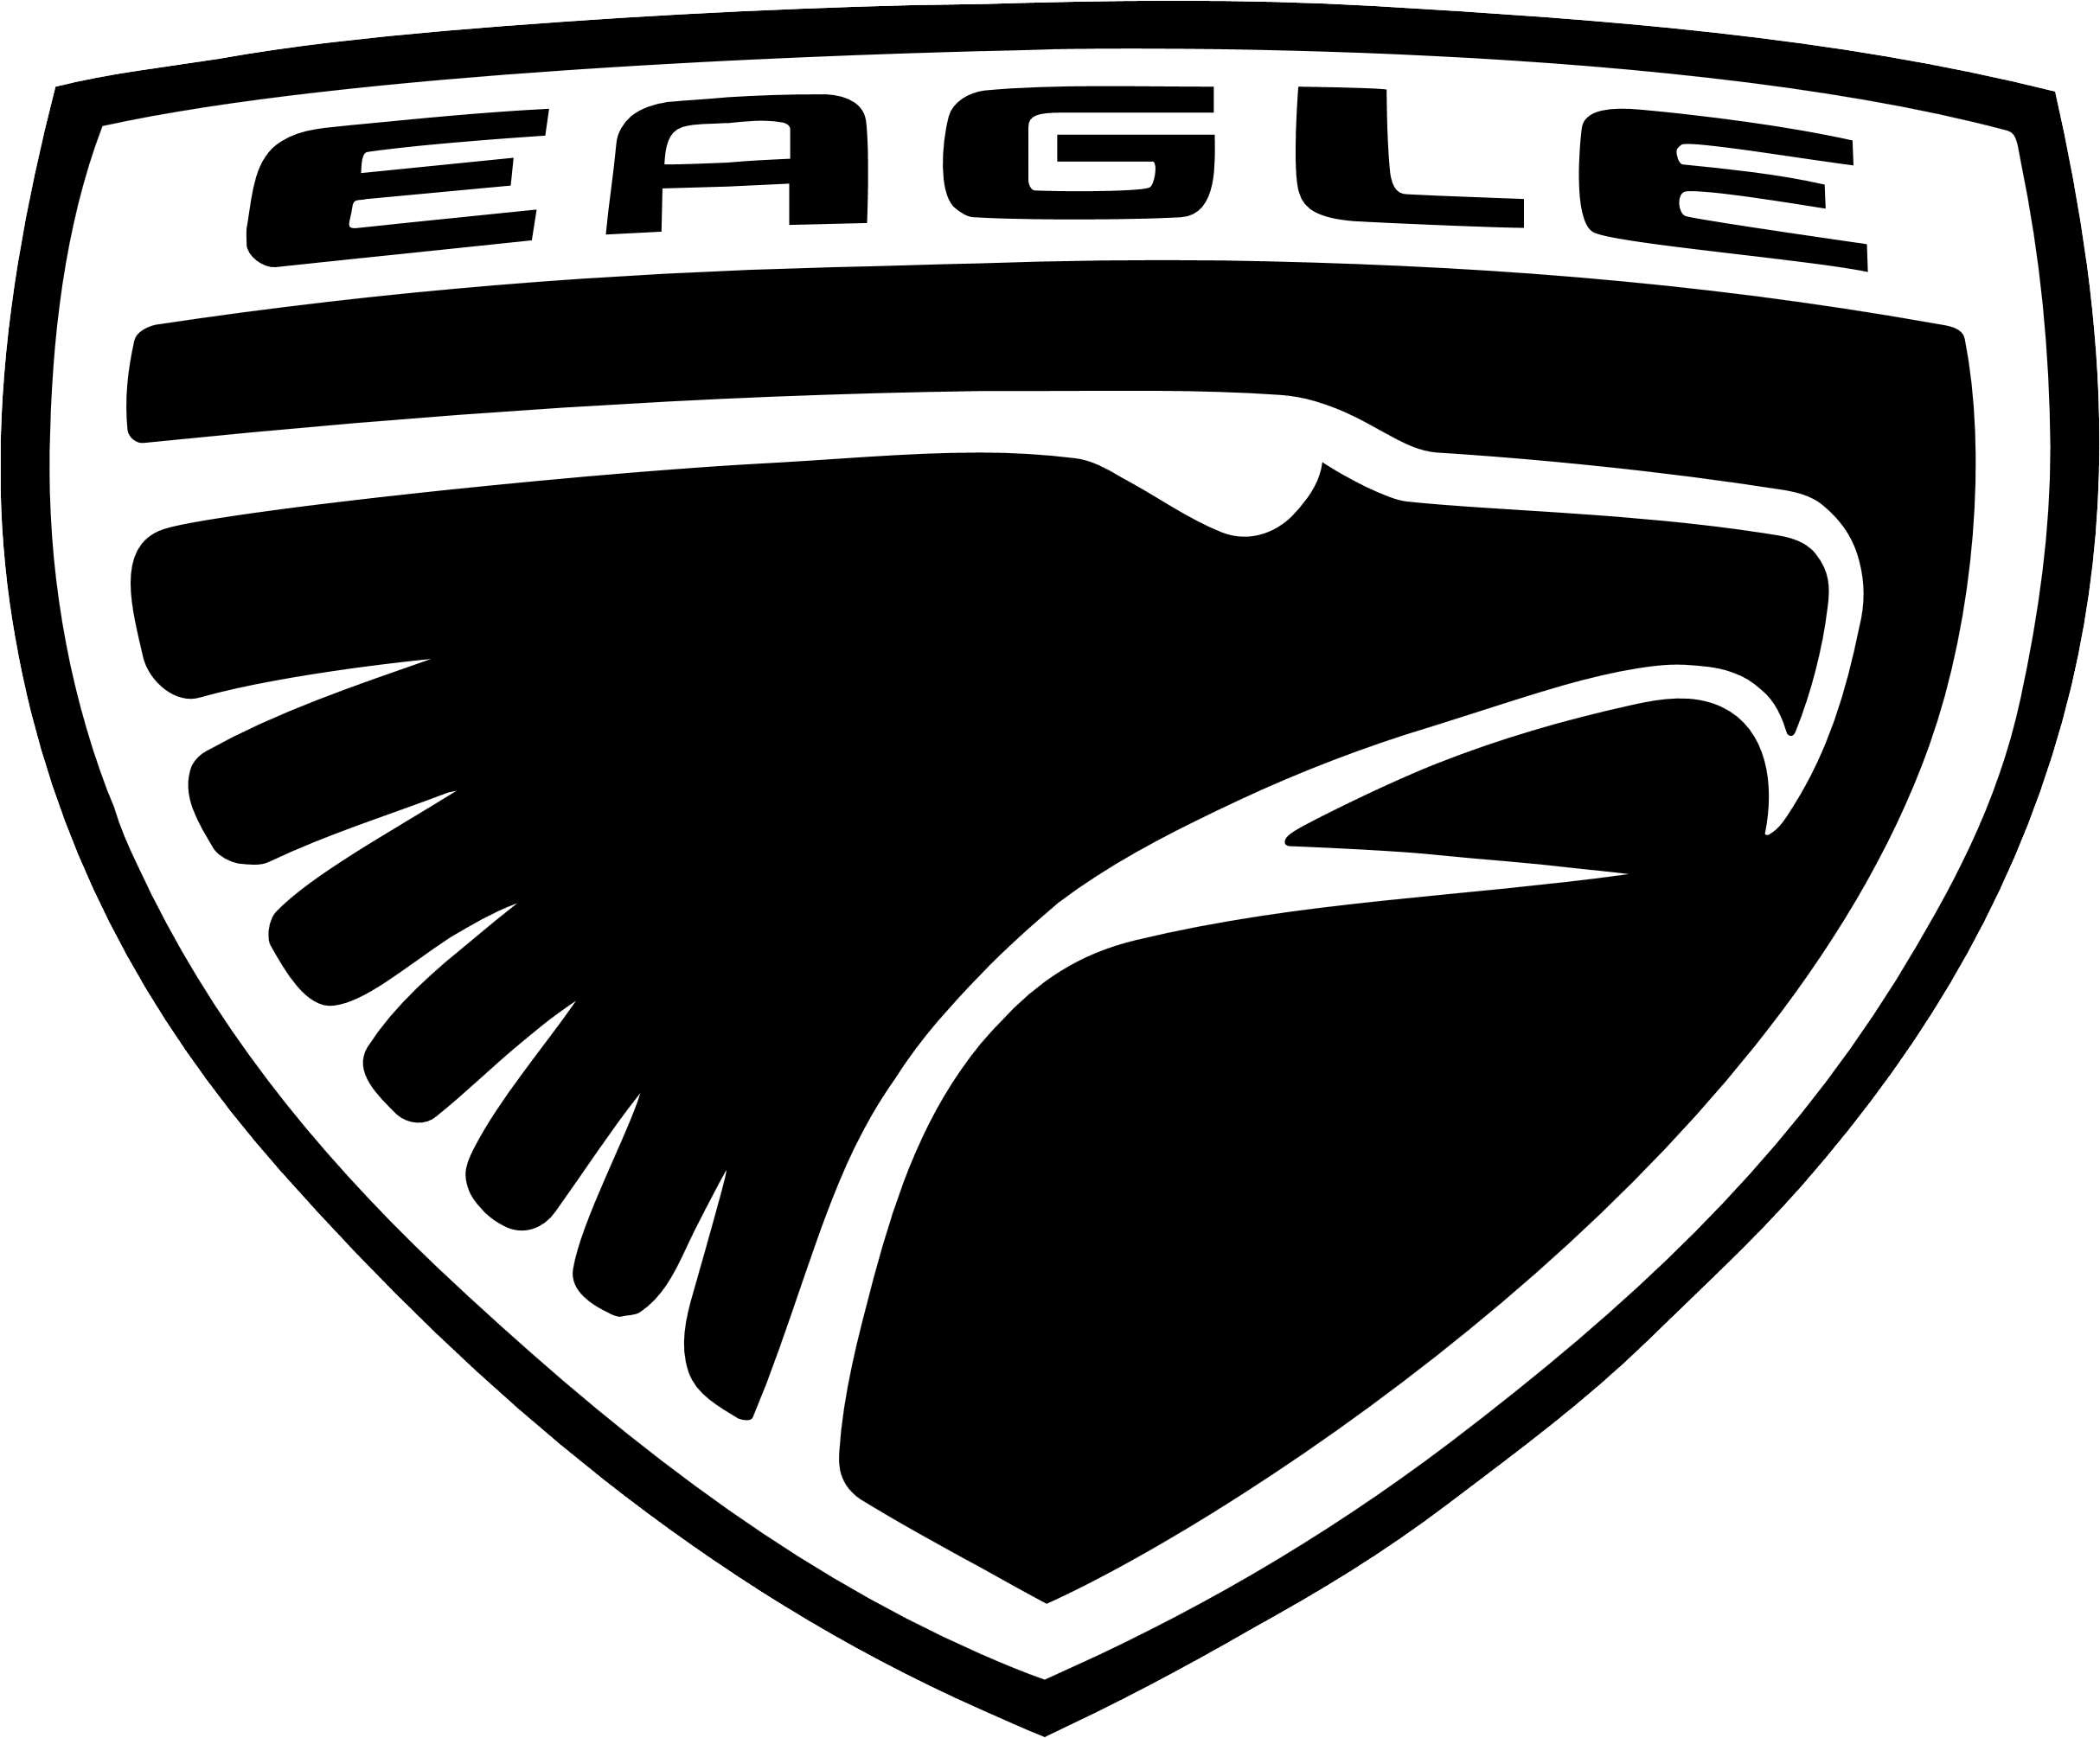 File:Eagle.png